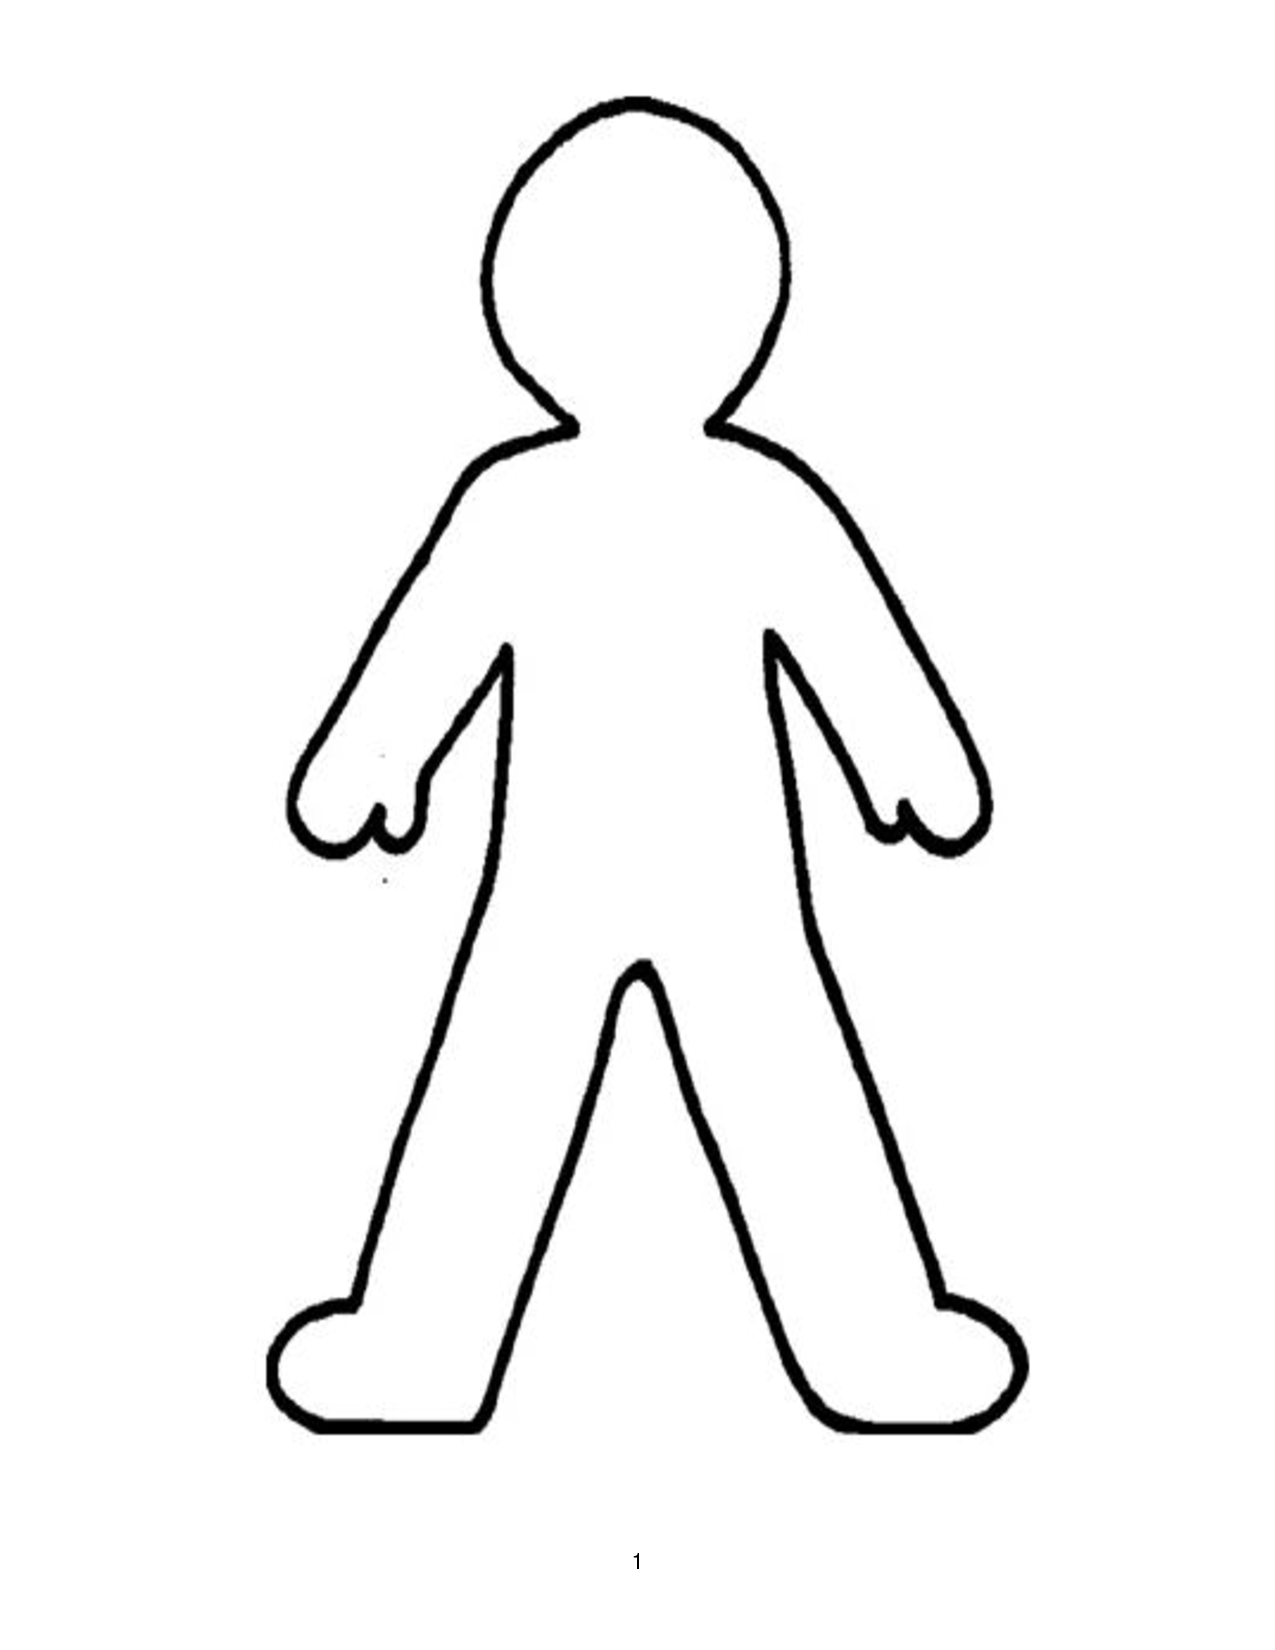 Cut out people clipart.